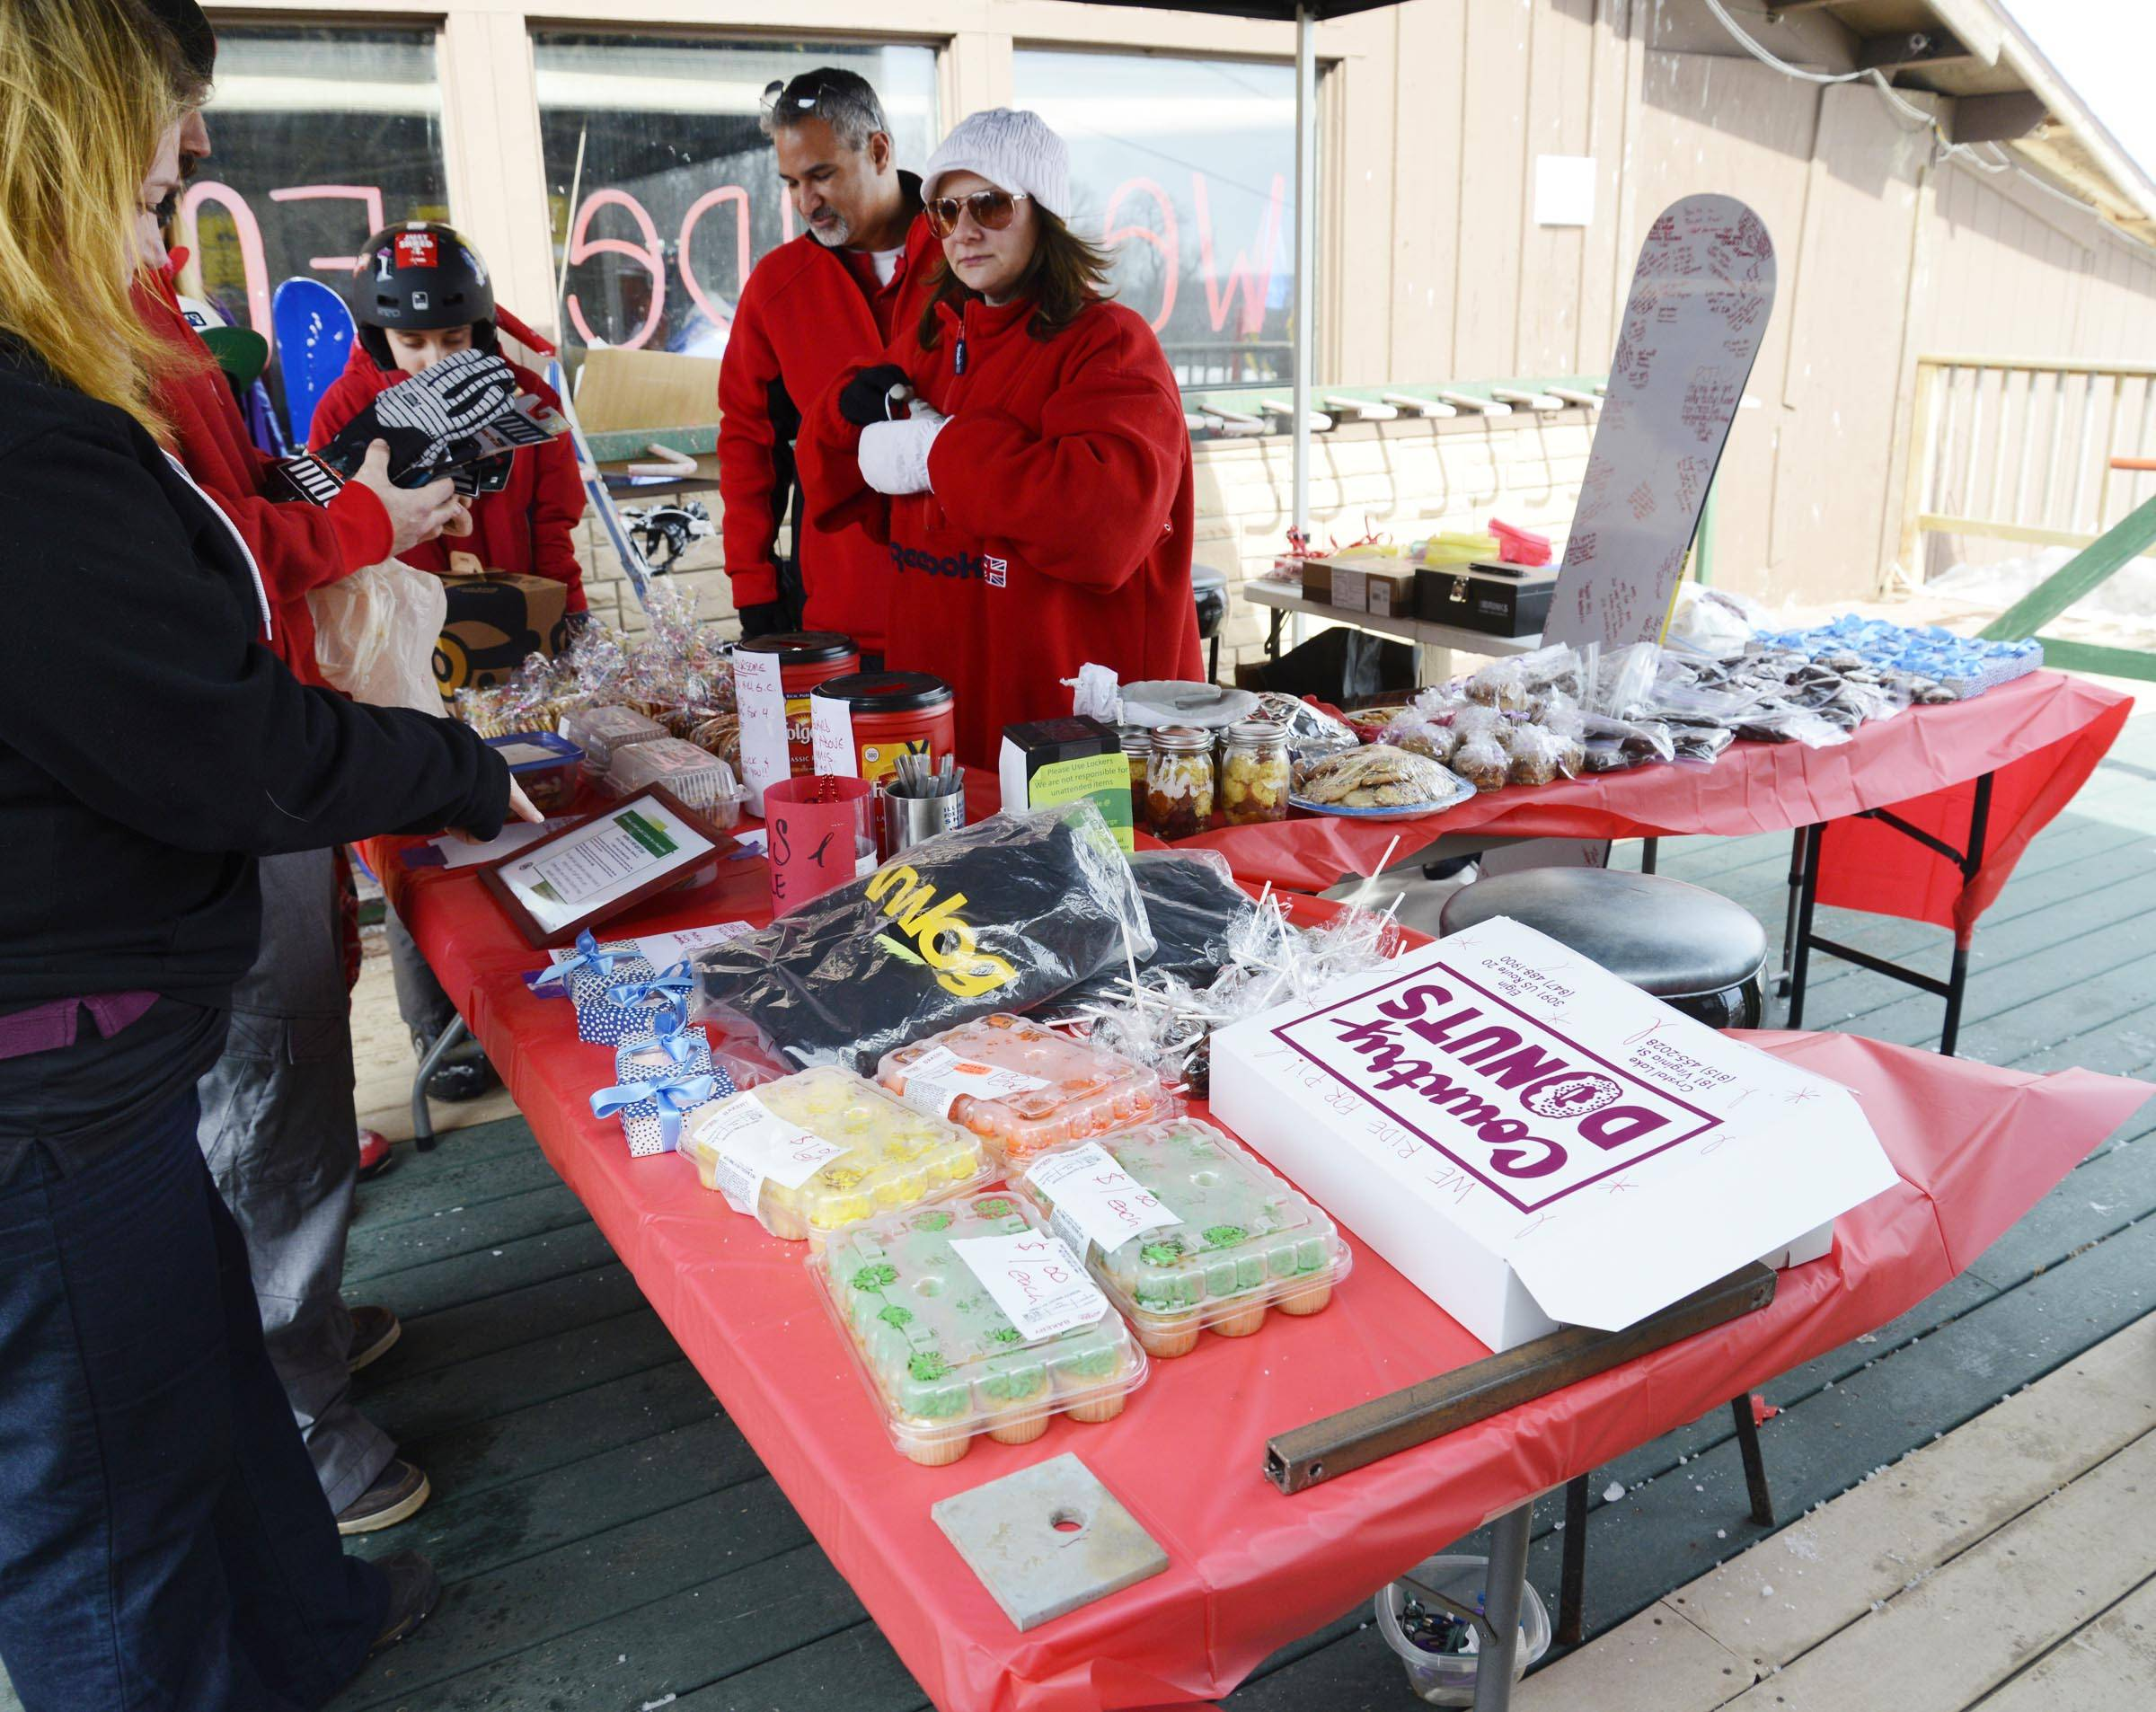 People gather Sunday at a table full of donated goods being sold to raise money for P.J. O'Donnell, the 17-year-old injured March 2 when he was caught in a machine at the Raging Buffalo Snow Park in Algonquin.